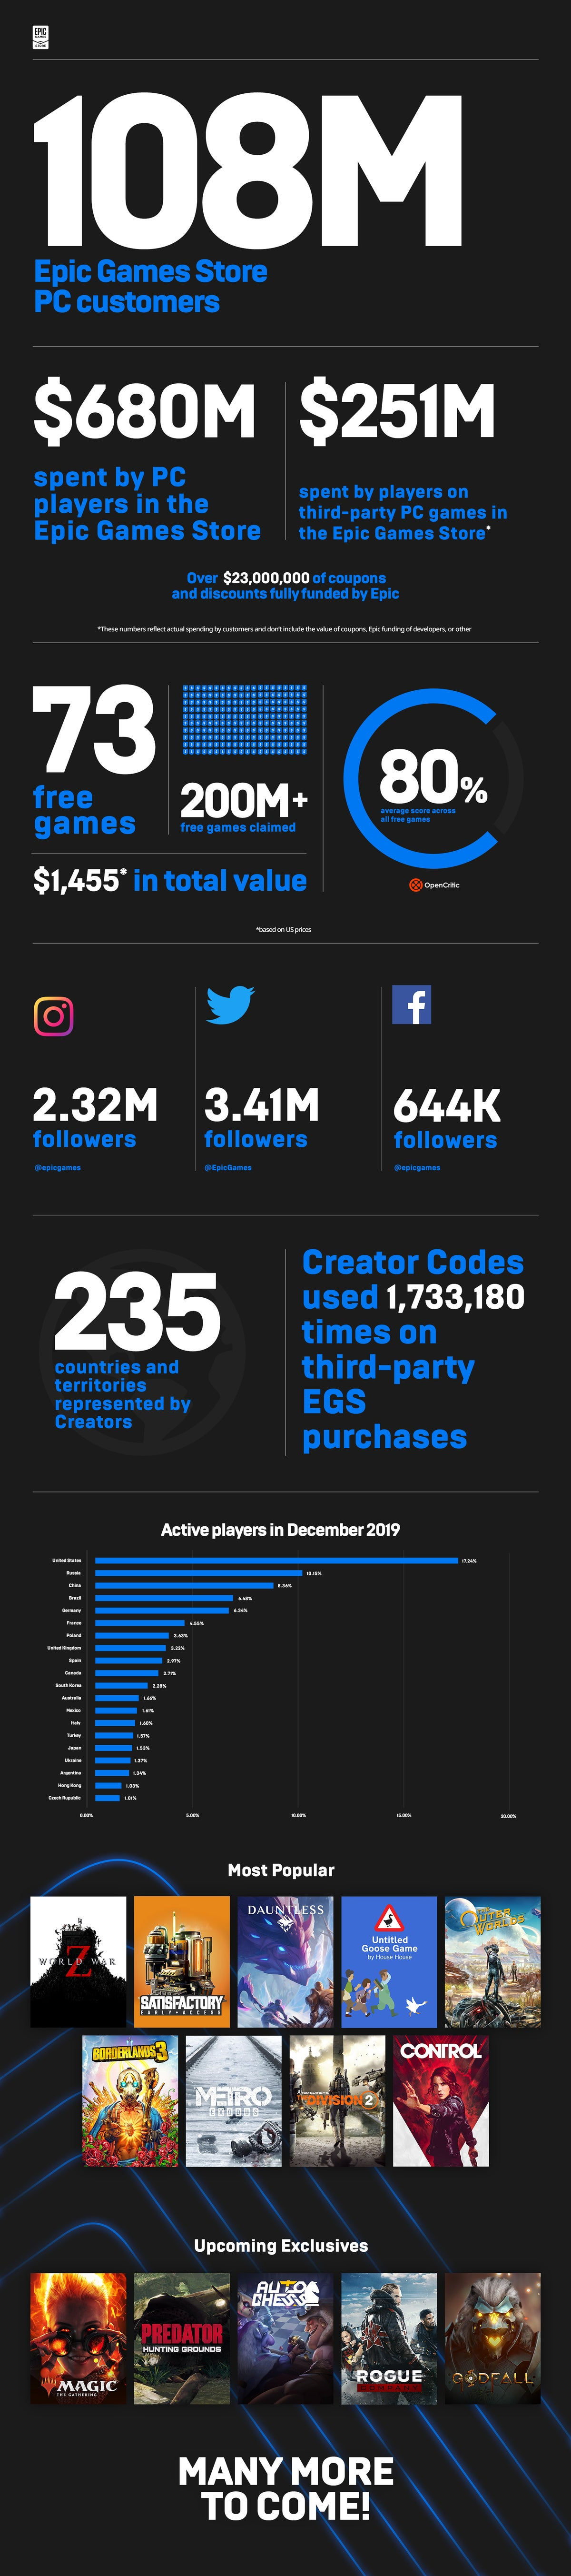 Epic Games Store - Year One Infographic